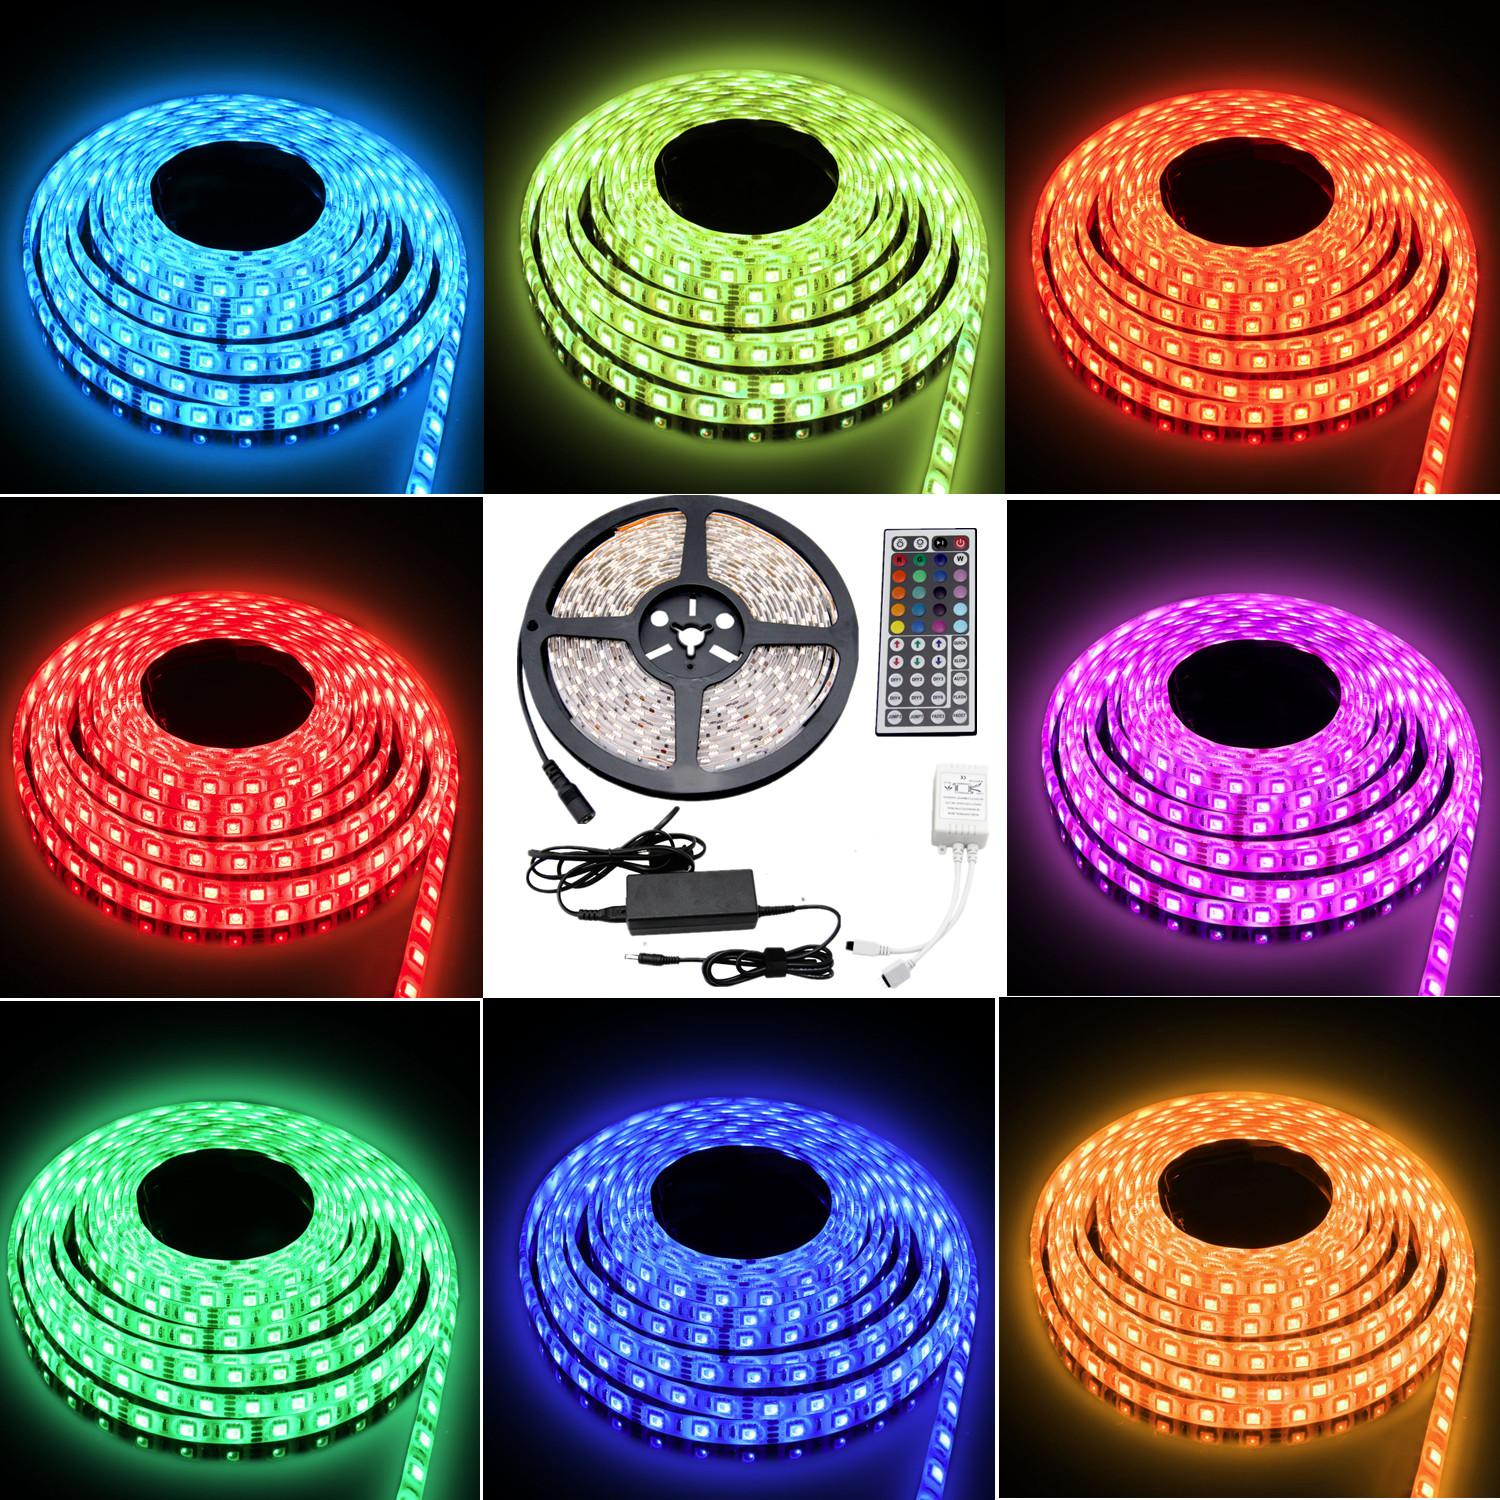 Besdata 164ft 5m waterproof rope lights 300 led 5050 smd color besdata 164ft 5m waterproof rope lights 300 led 5050 smd color changing redgb12v 5a power supply44 key remoteir controller muliti color waterproof led aloadofball